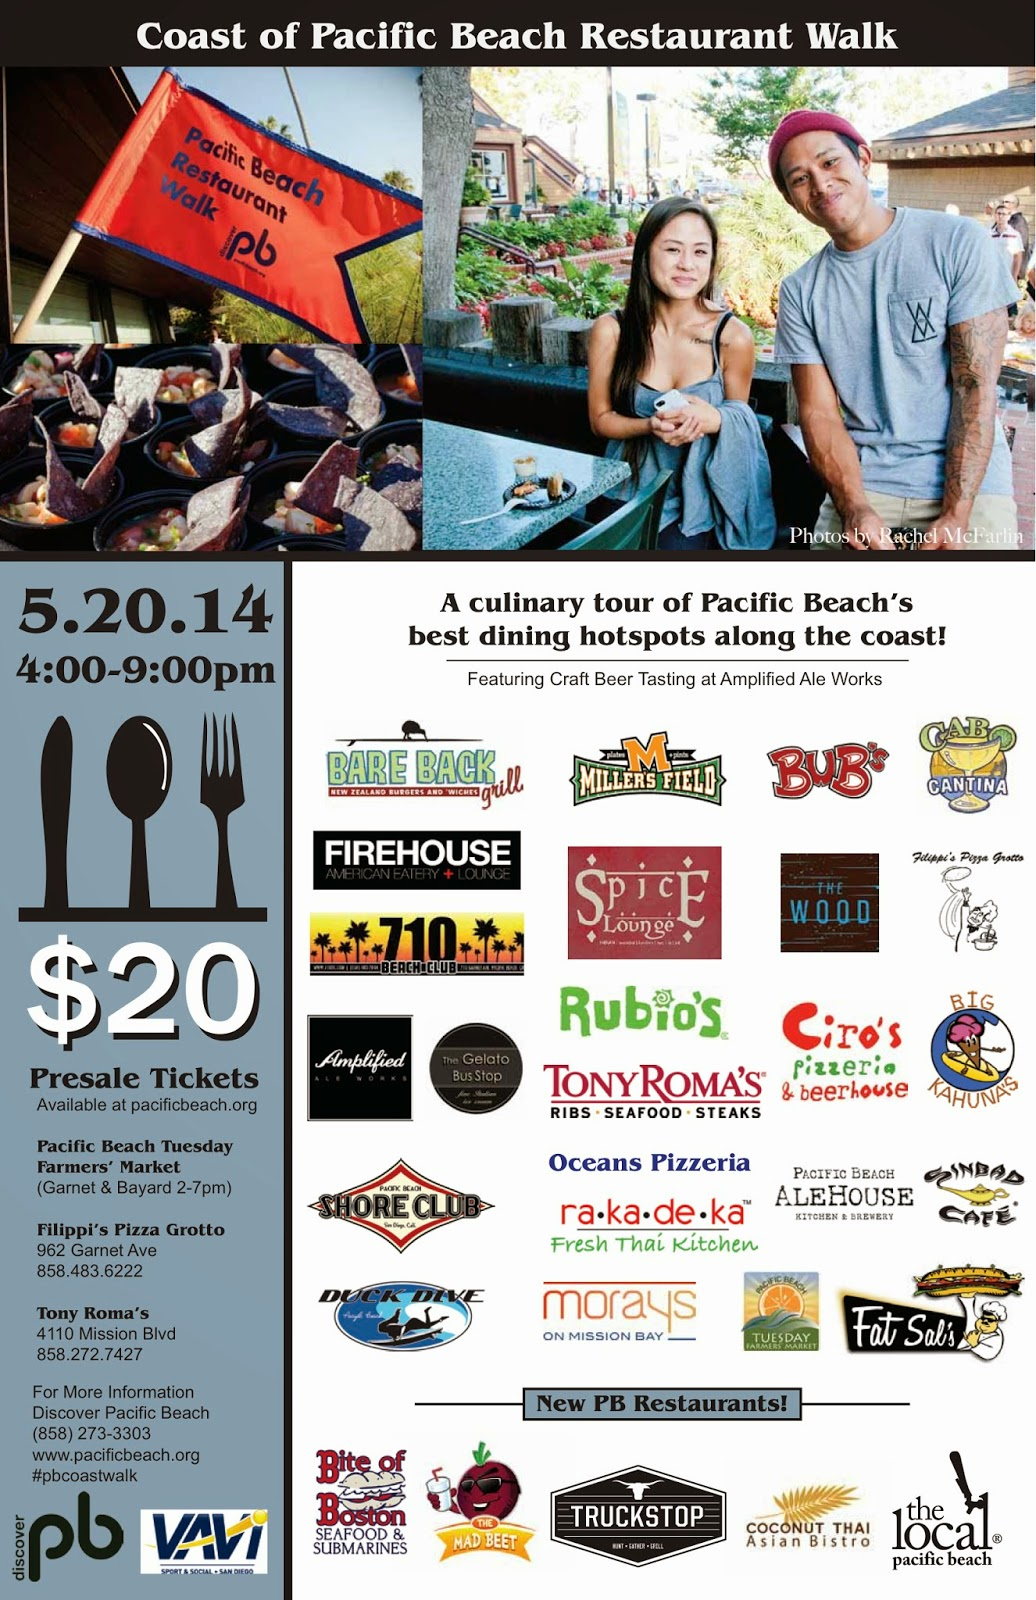 Get Your Tickets Now For The Coast Of Pacific Beach Restaurant Walk Tuesday May 20